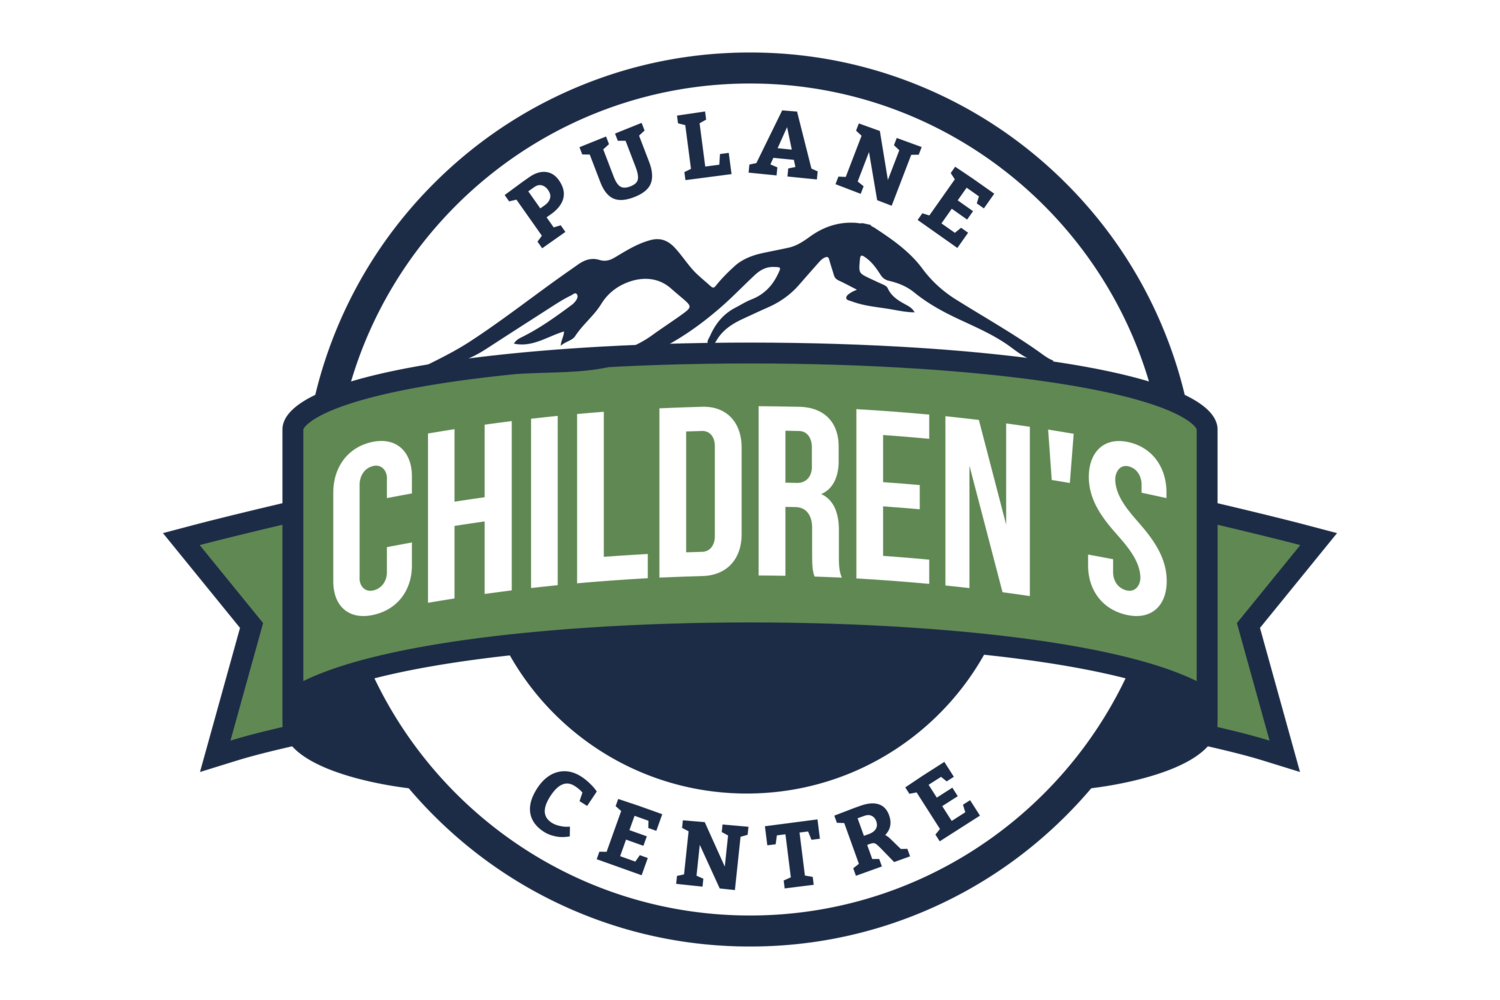 Pulane Children's Centre